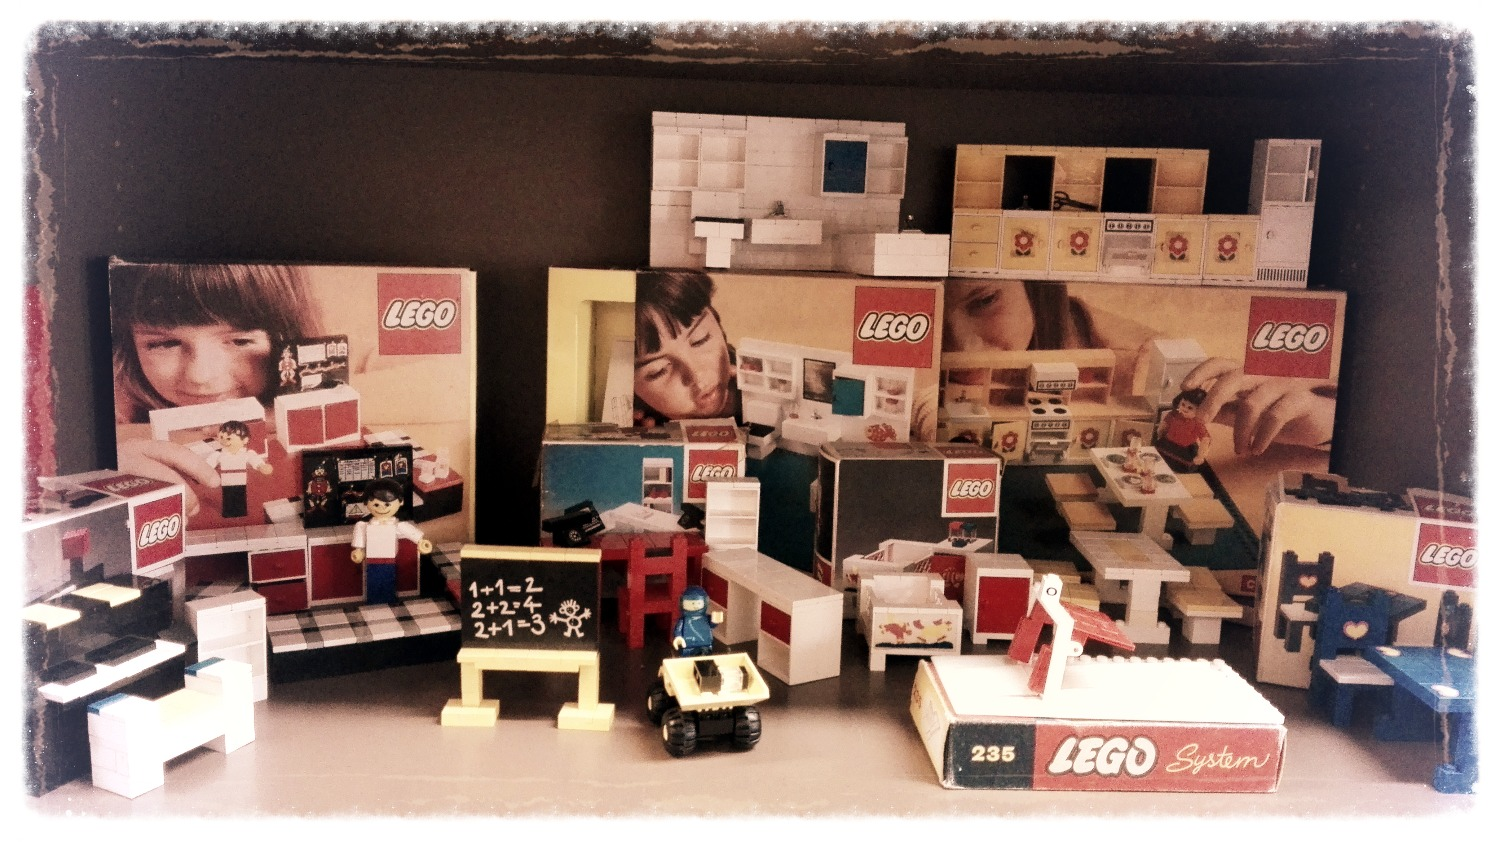 Lego from 1950 to today